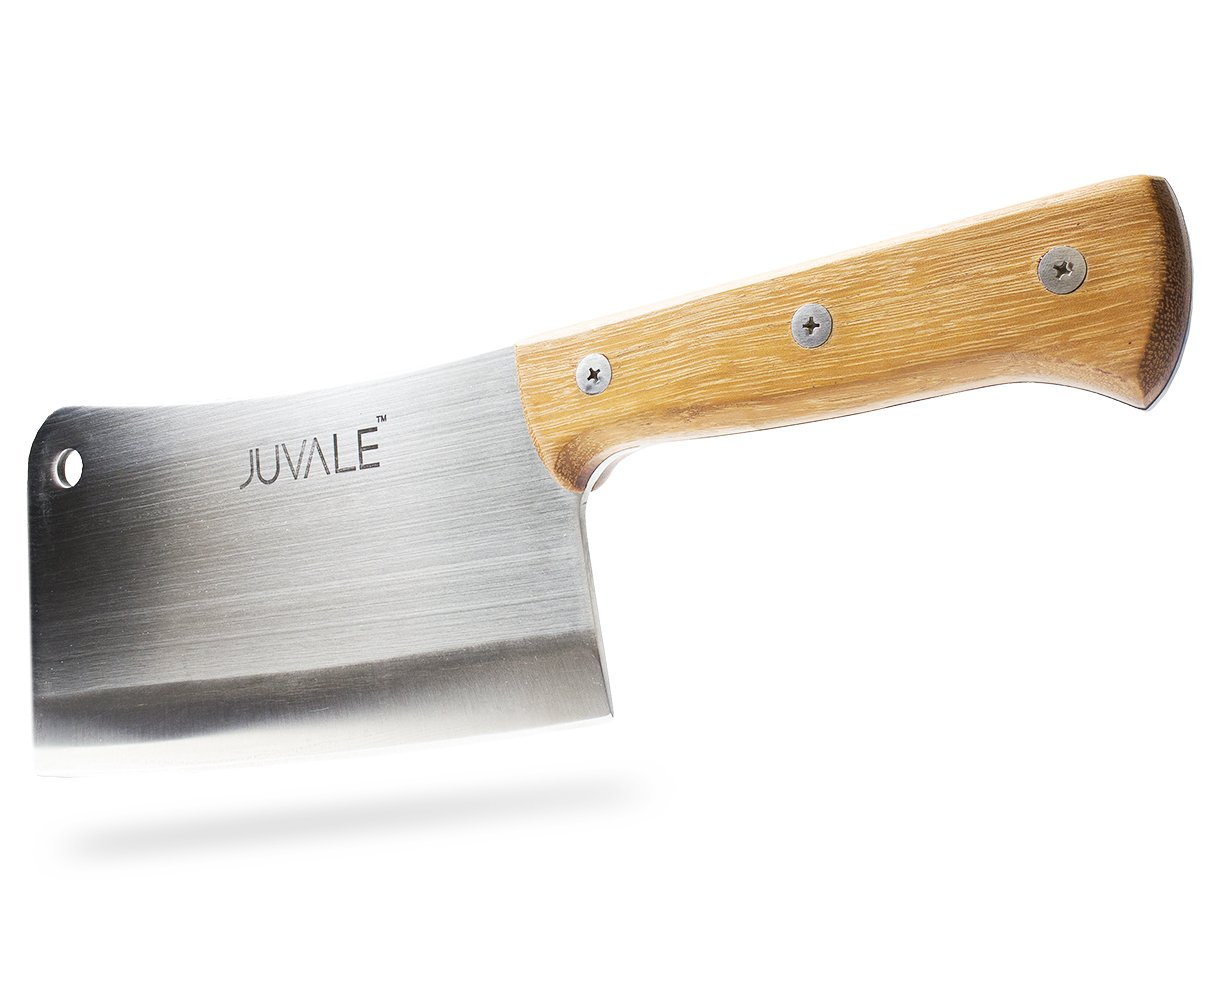 Juvale Stainless Steel Heavy Duty Meat Cleaver/Chopper/Butcher Knife - Solid Wood Handle - Professional Quality - for Home & Restaurant Use - 8 Inches by Juvale